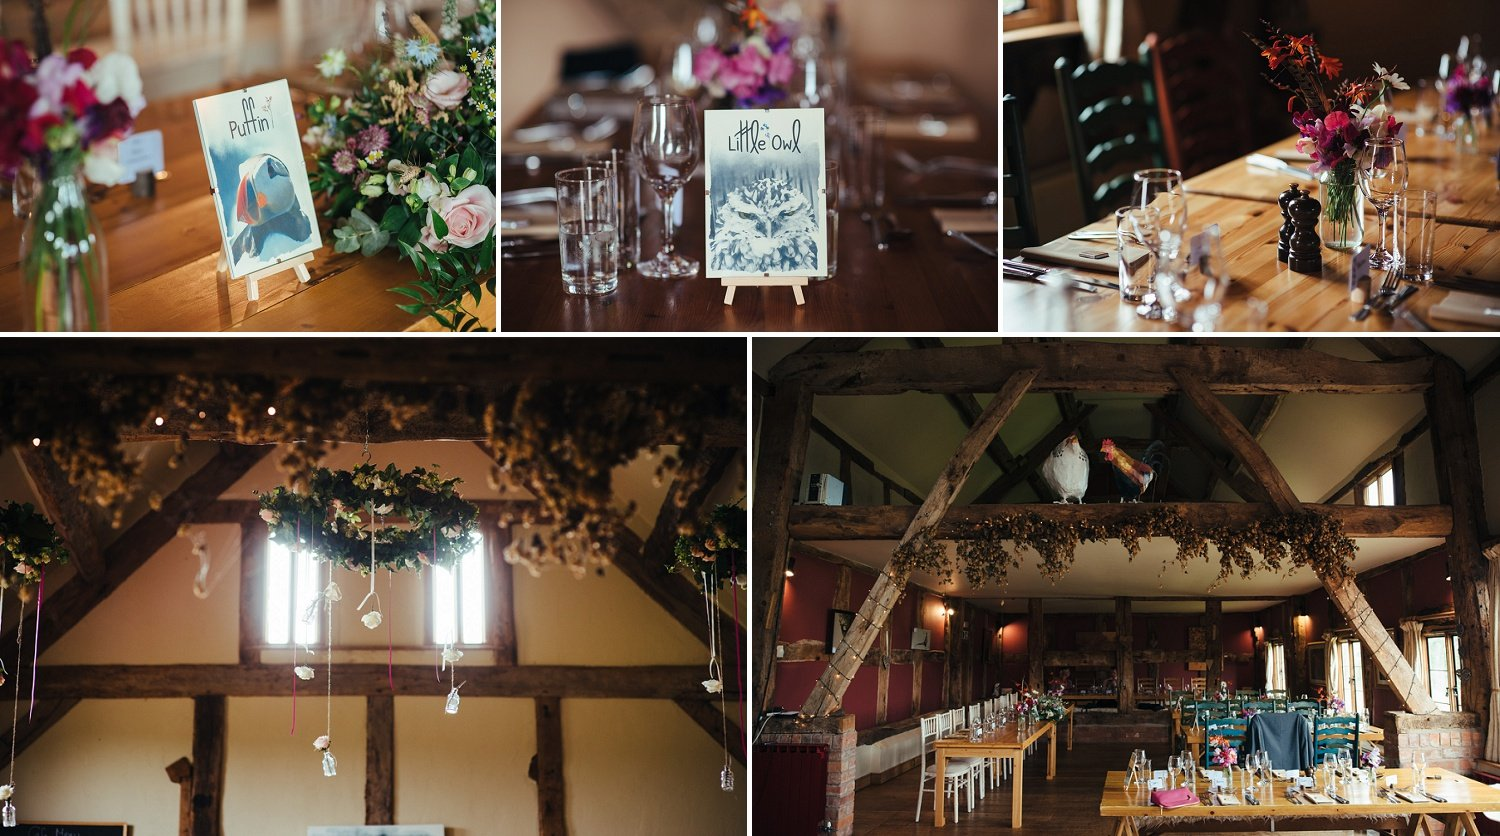 nature inspired wedding decor at Cider Barn in Herefordshire